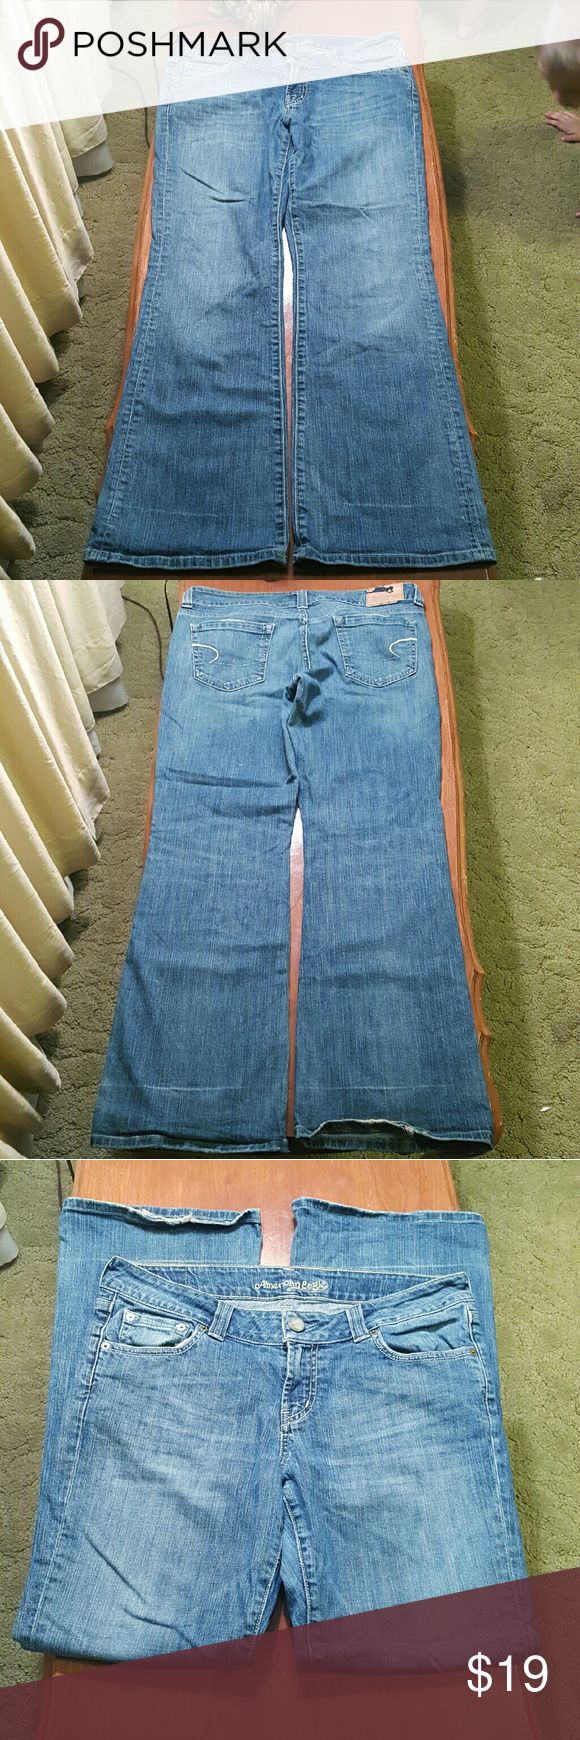 Size 12 Short American Eagle Jeans Really good condition Size 12 Short American Eagle Jeans, Boyfriend 77 Style. Very Slight hem wear on back left jean leg. There is a black X on the inside, but you can't see it wearing. I think it's there because I bought with a discount and the place I bought them had a no return policy. They were new with tags when I bought them but it was from an outlet type store. American Eagle Outfitters Jeans Flare & Wide Leg